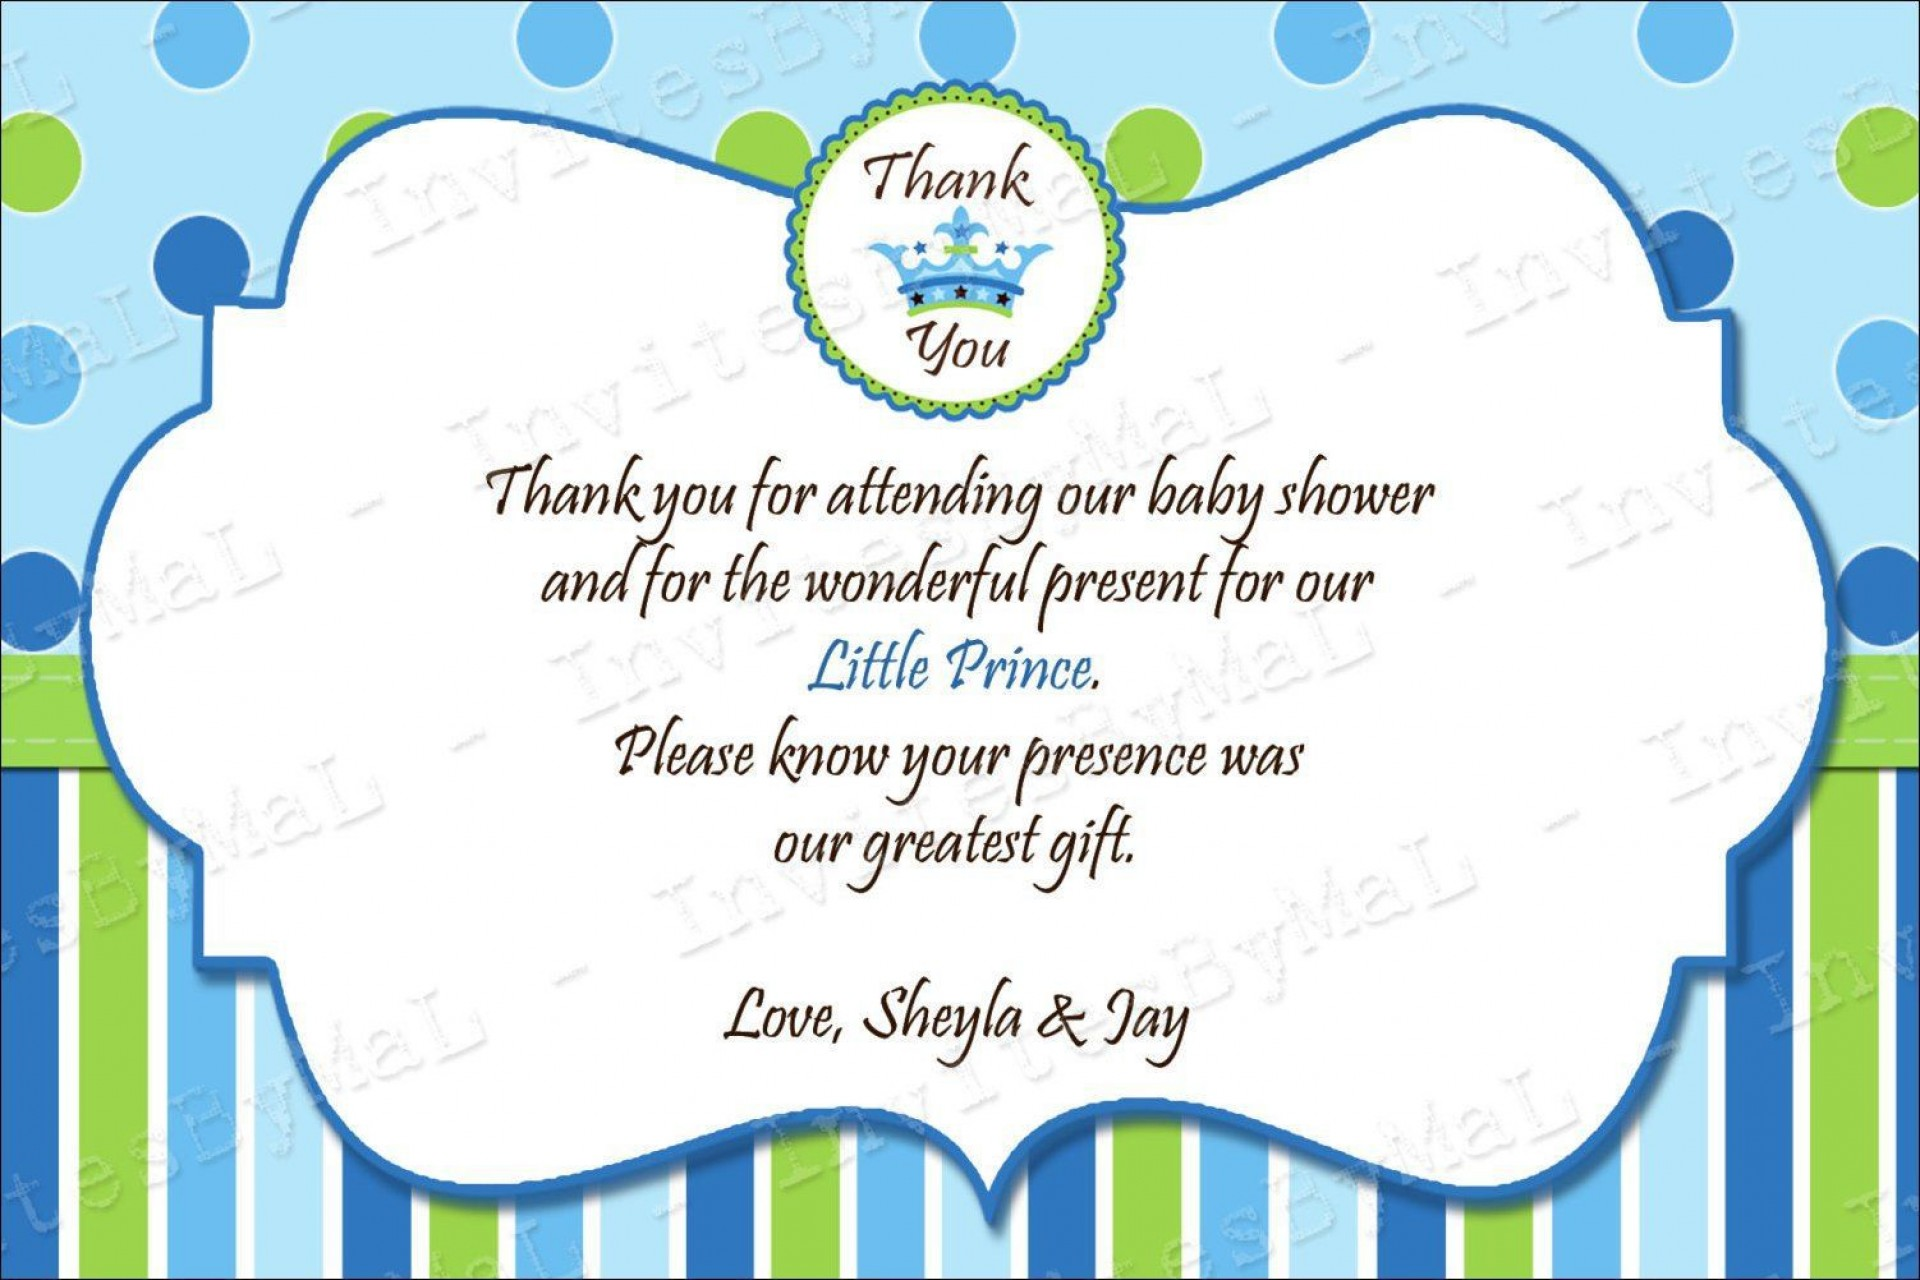 008 Rare Thank You Note Wording Baby Shower Photo  For Hosting Card1920